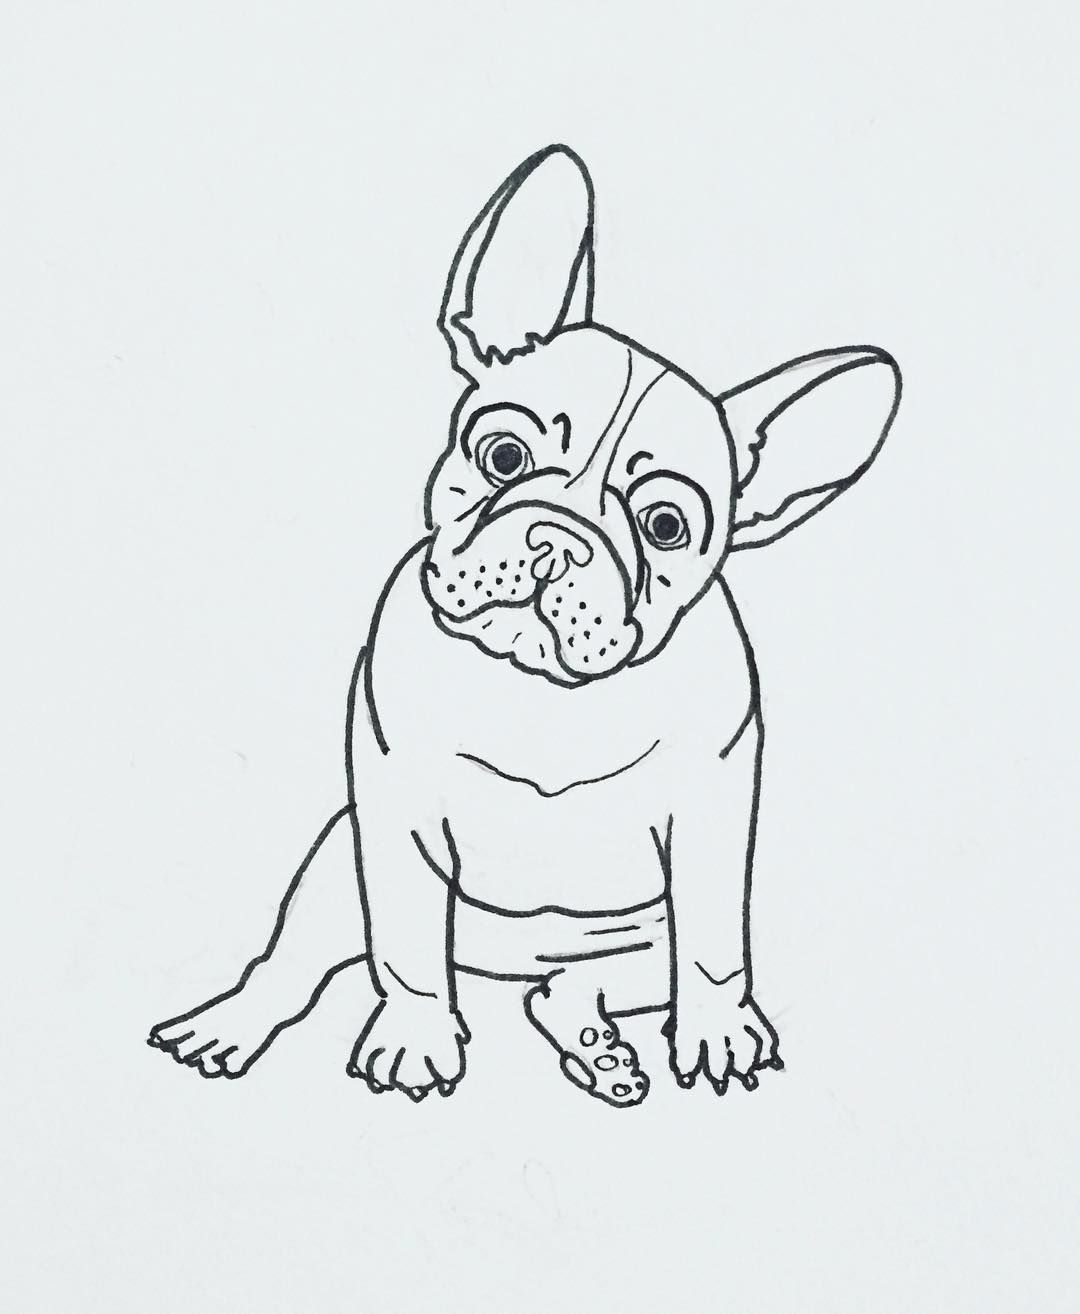 Uncategorized Bull Dog Drawing french bulldog pillow project bulldogs embroidery and frenchie illustration by thepapermama